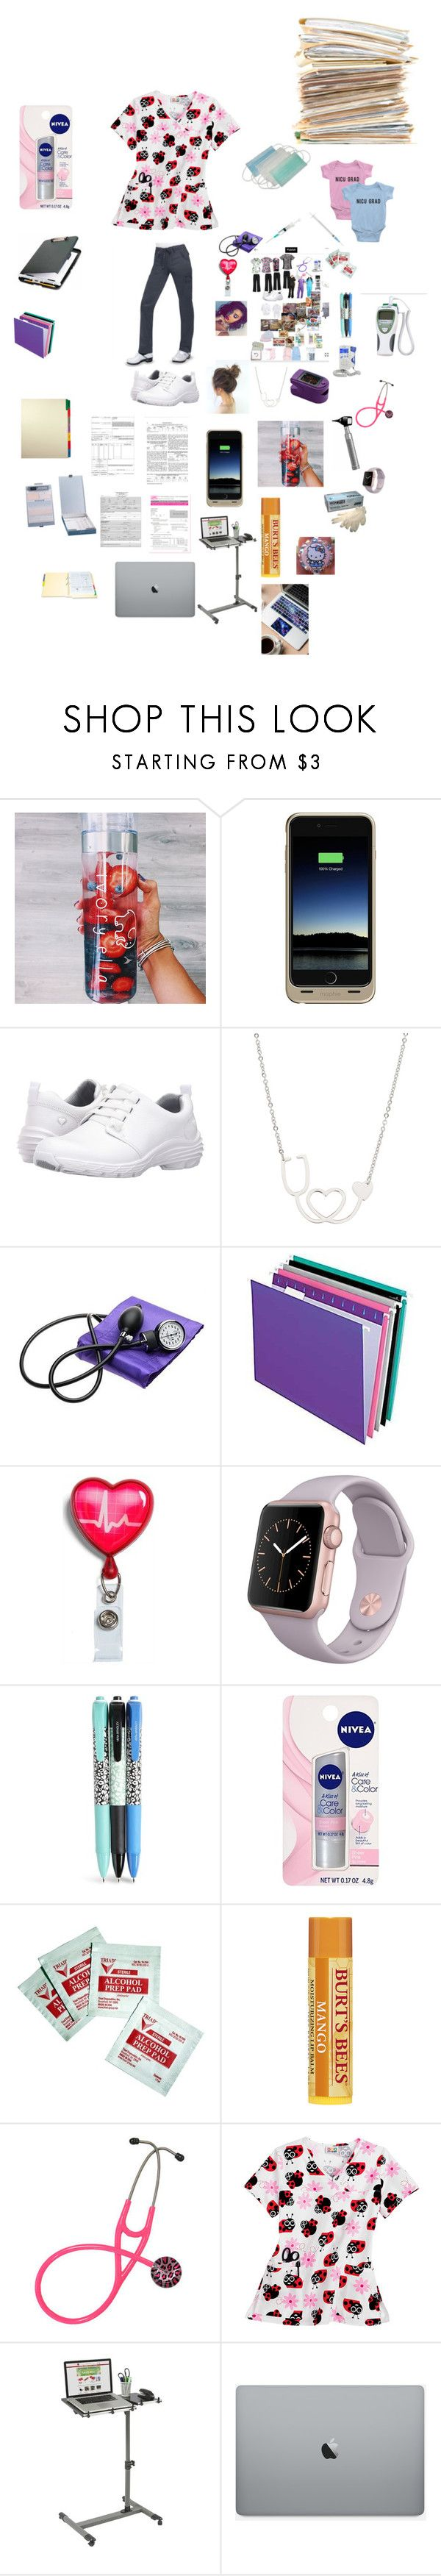 """NICU Nurse💜"" by kingxkylie ❤ liked on Polyvore featuring Mophie, Nurse Mates, Lab, Pendaflex, Vera Bradley, Nivea and UltraScope"